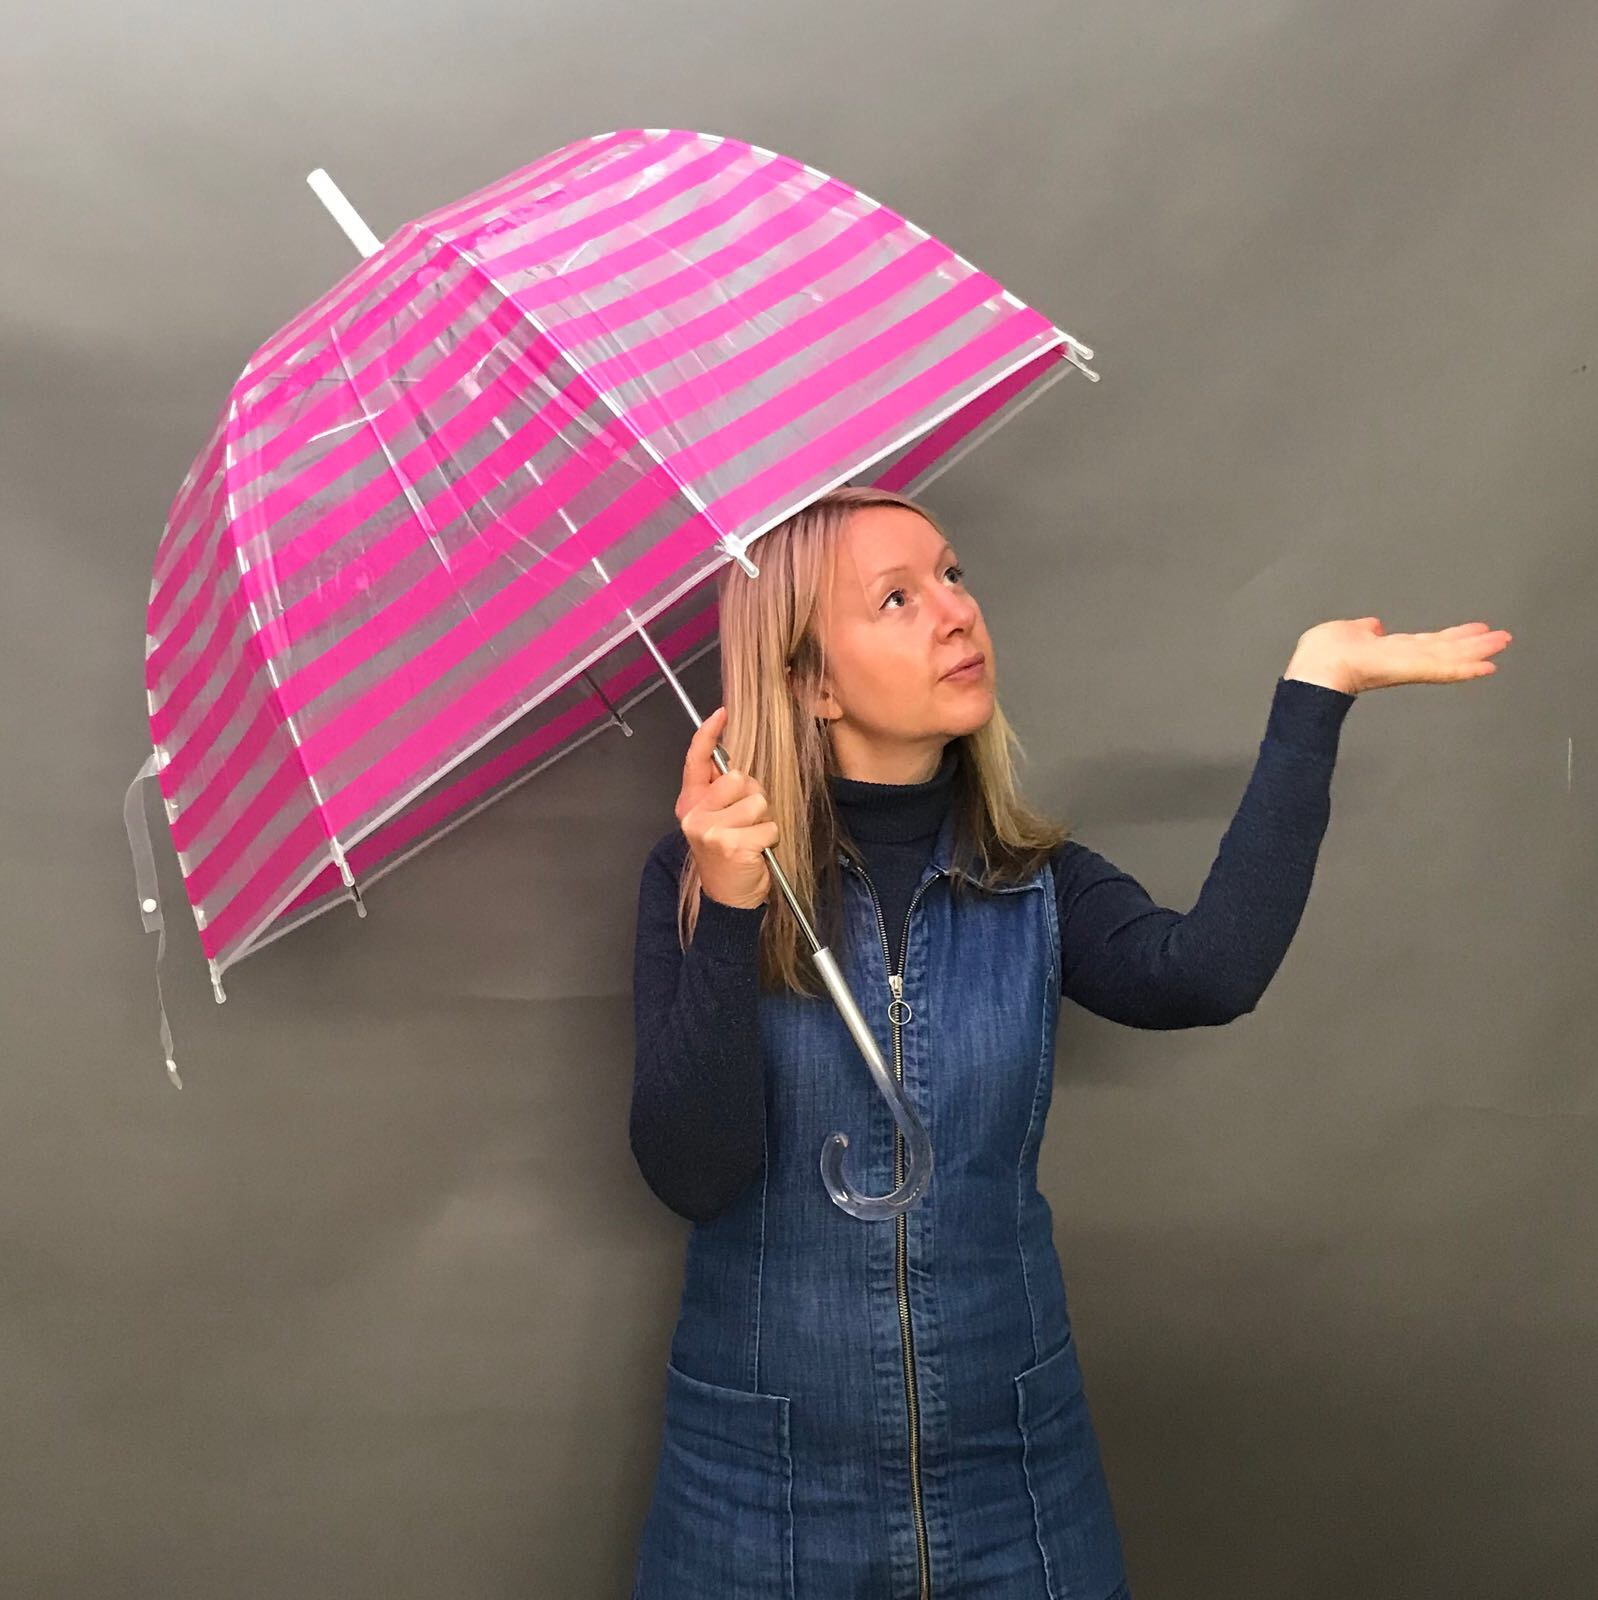 Katya Willems Instagram Trainer with umbrella